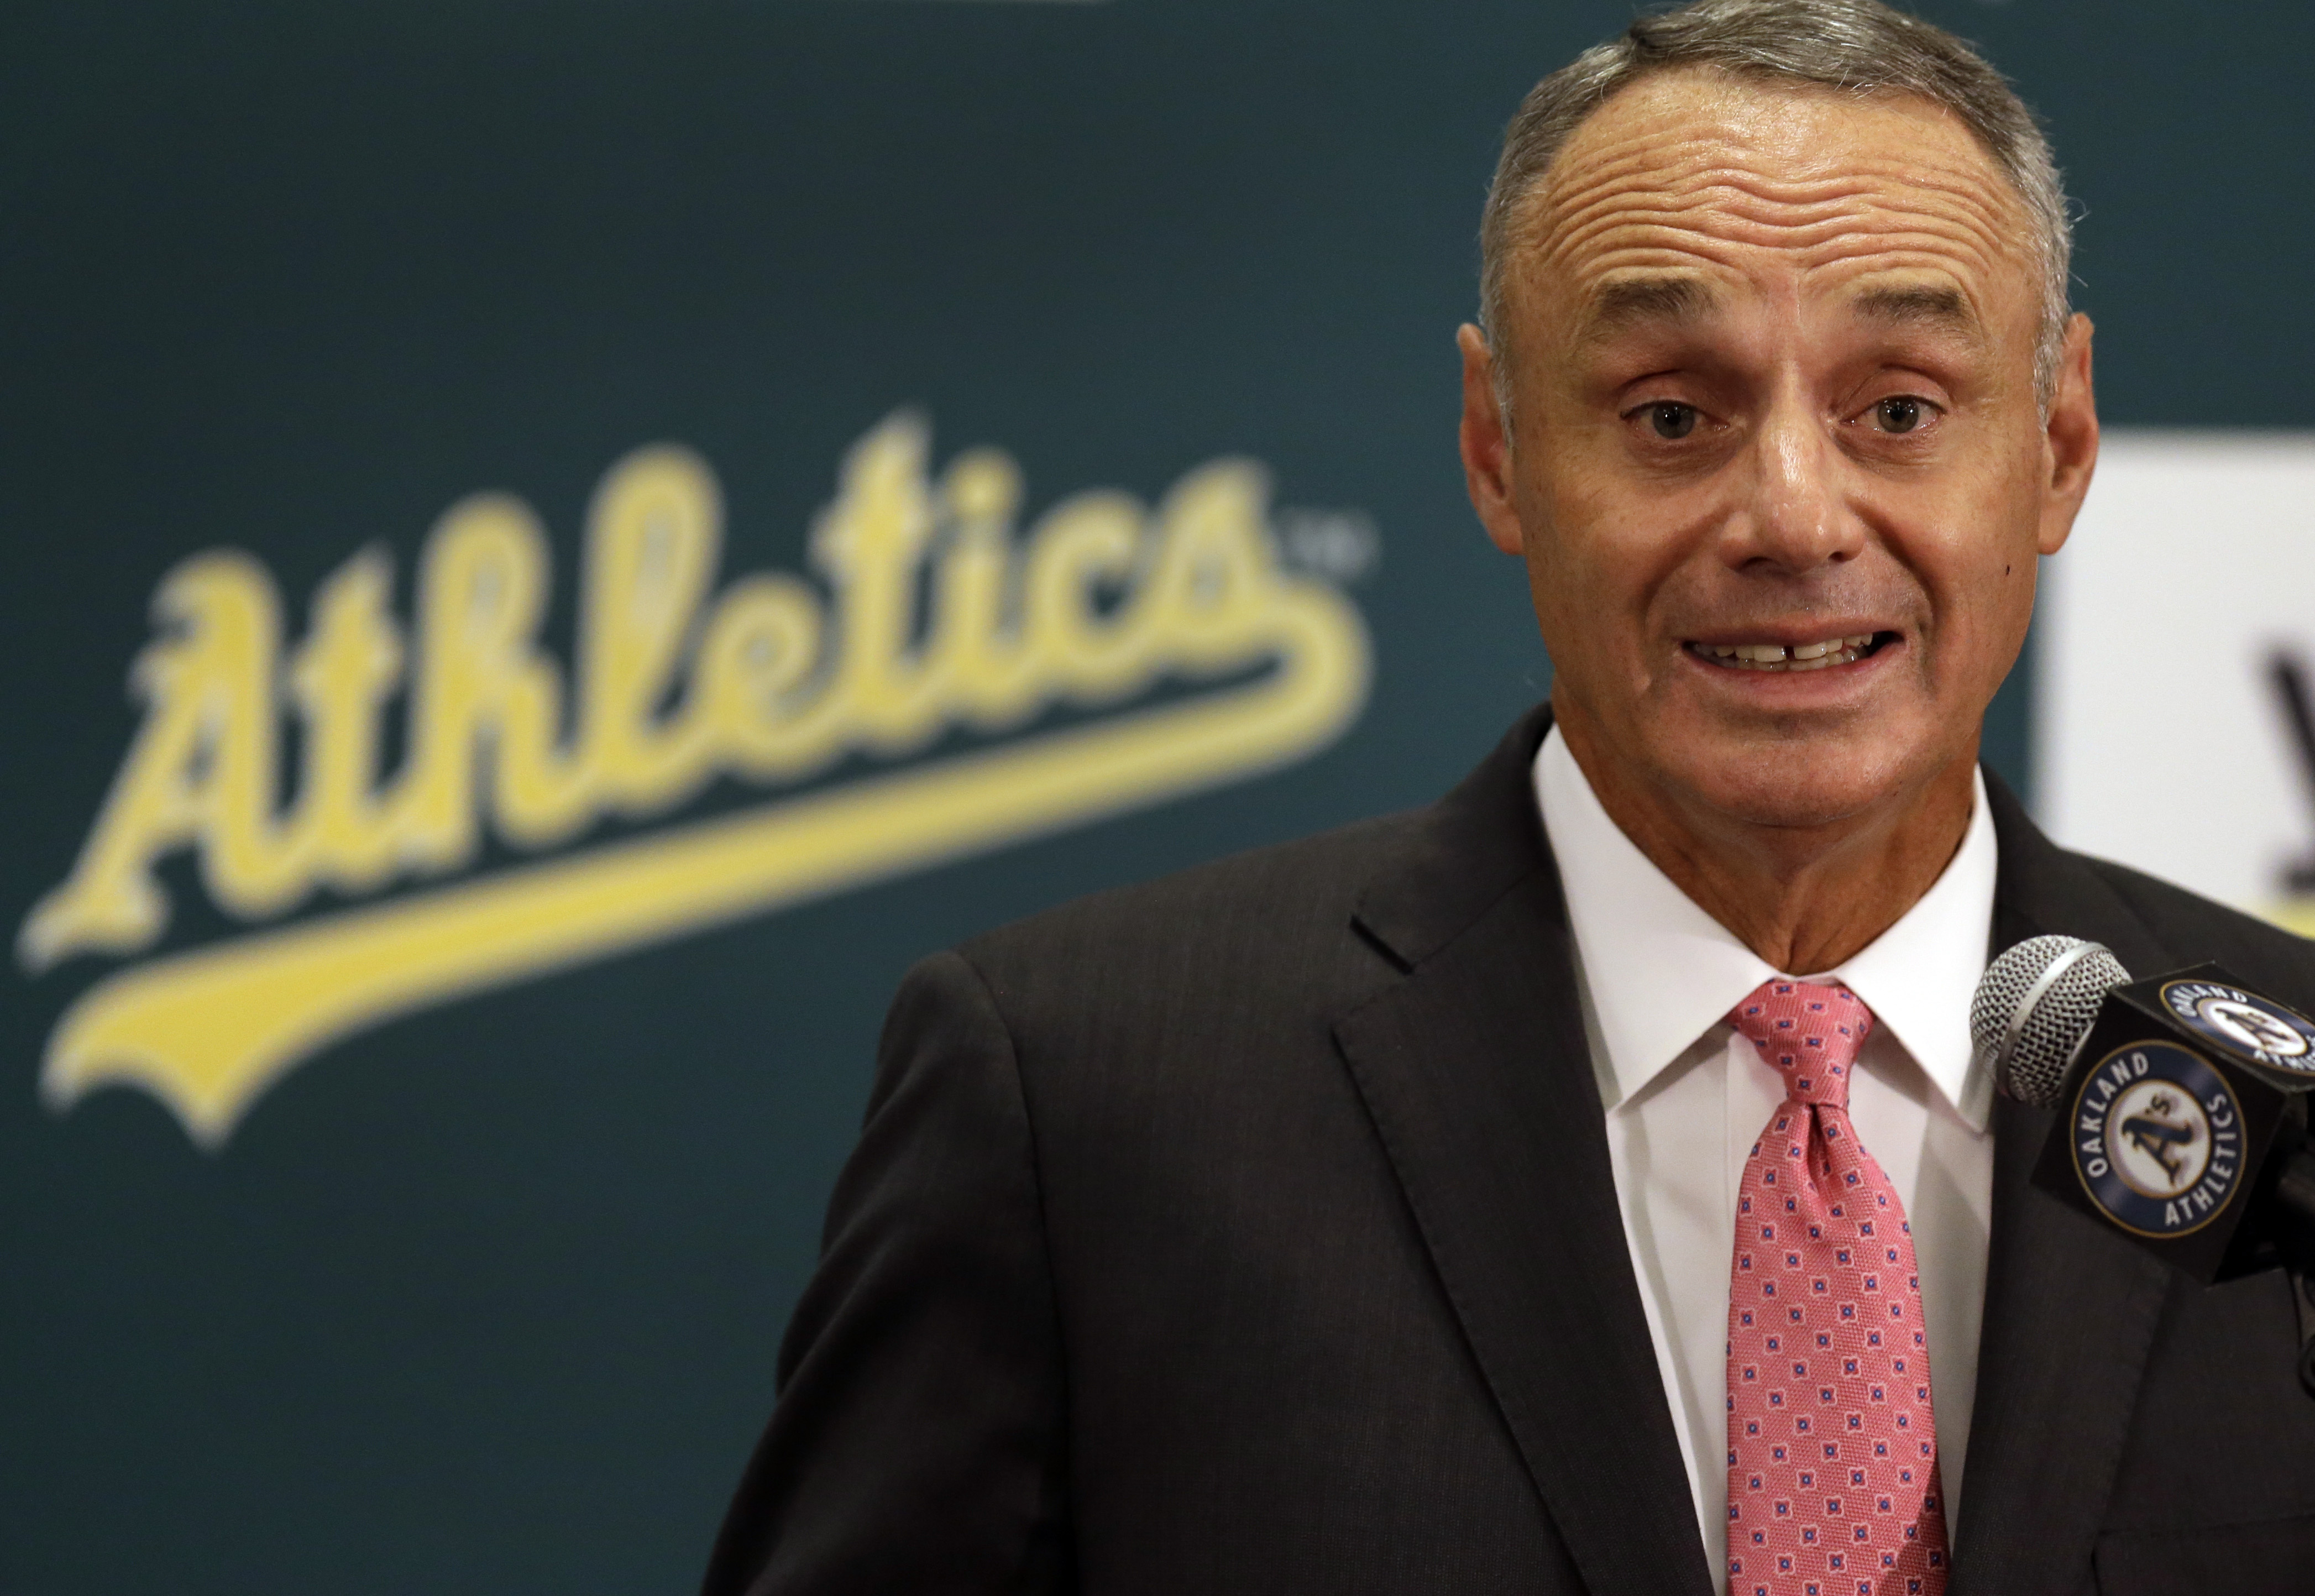 Baseball Commissioner Rob Manfred speaks during a media conference Friday, June 19, 2015, prior to a baseball game between the Los Angeles Angels and the Oakland Athletics in Oakland, Calif. (AP Photo/Ben Margot)